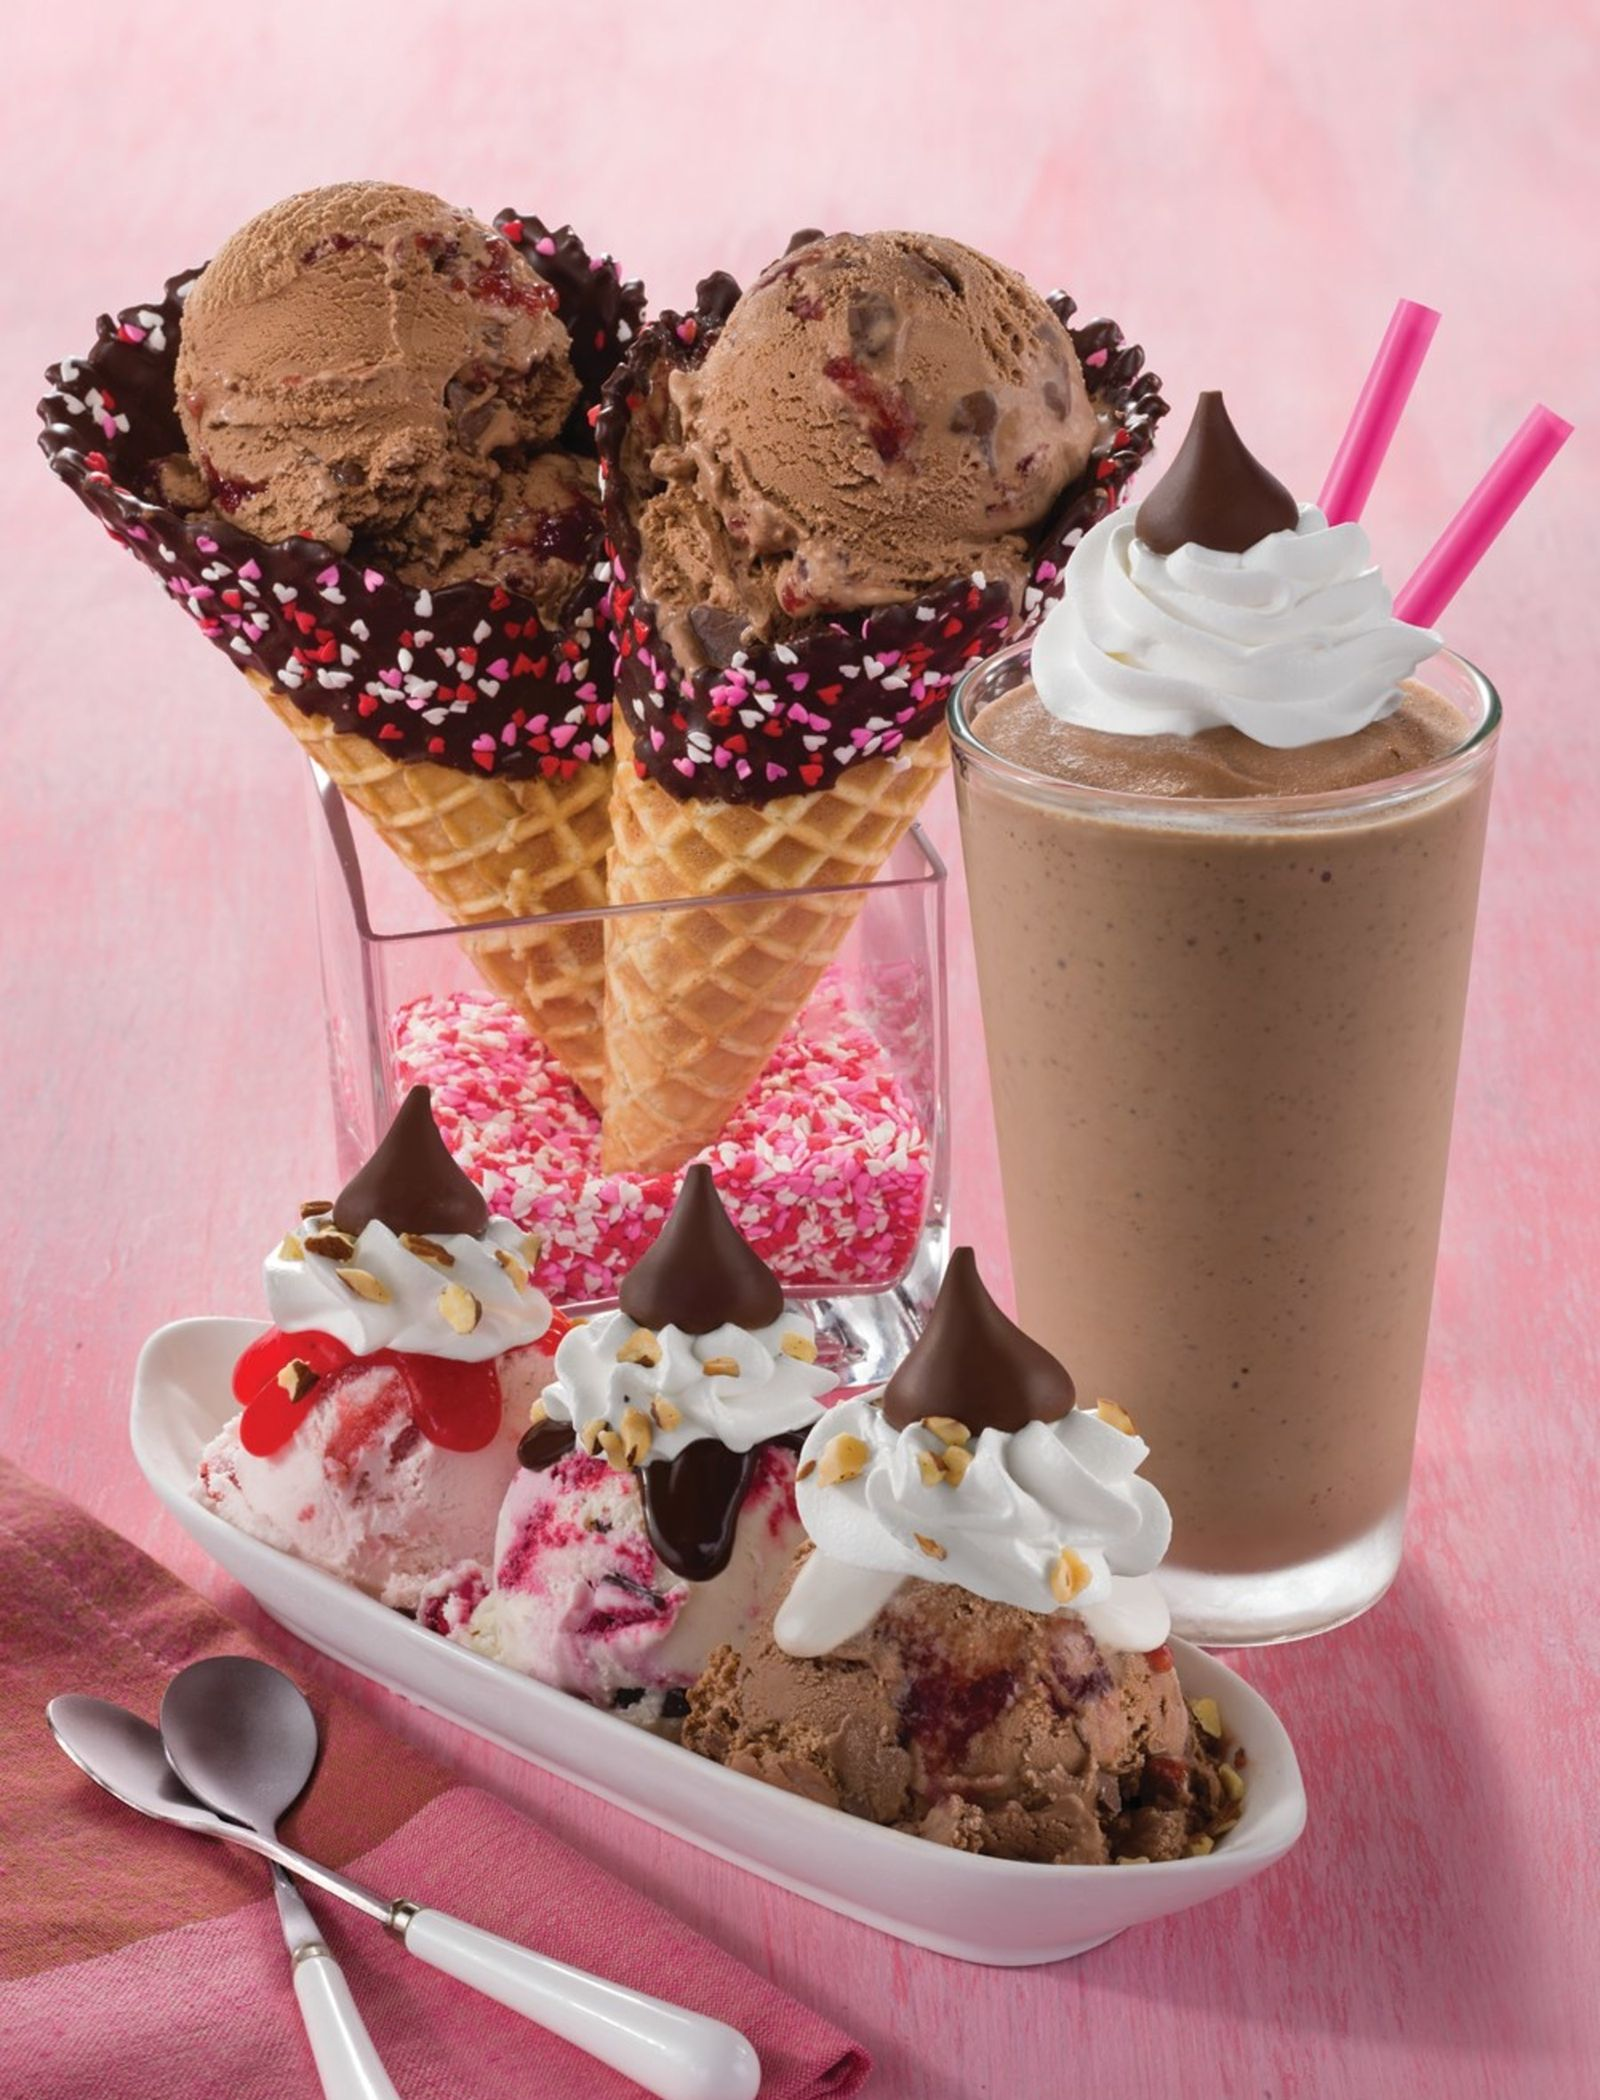 Fall Head Over Heels in Love with Baskin-Robbins Kiss-Inspired February Menu